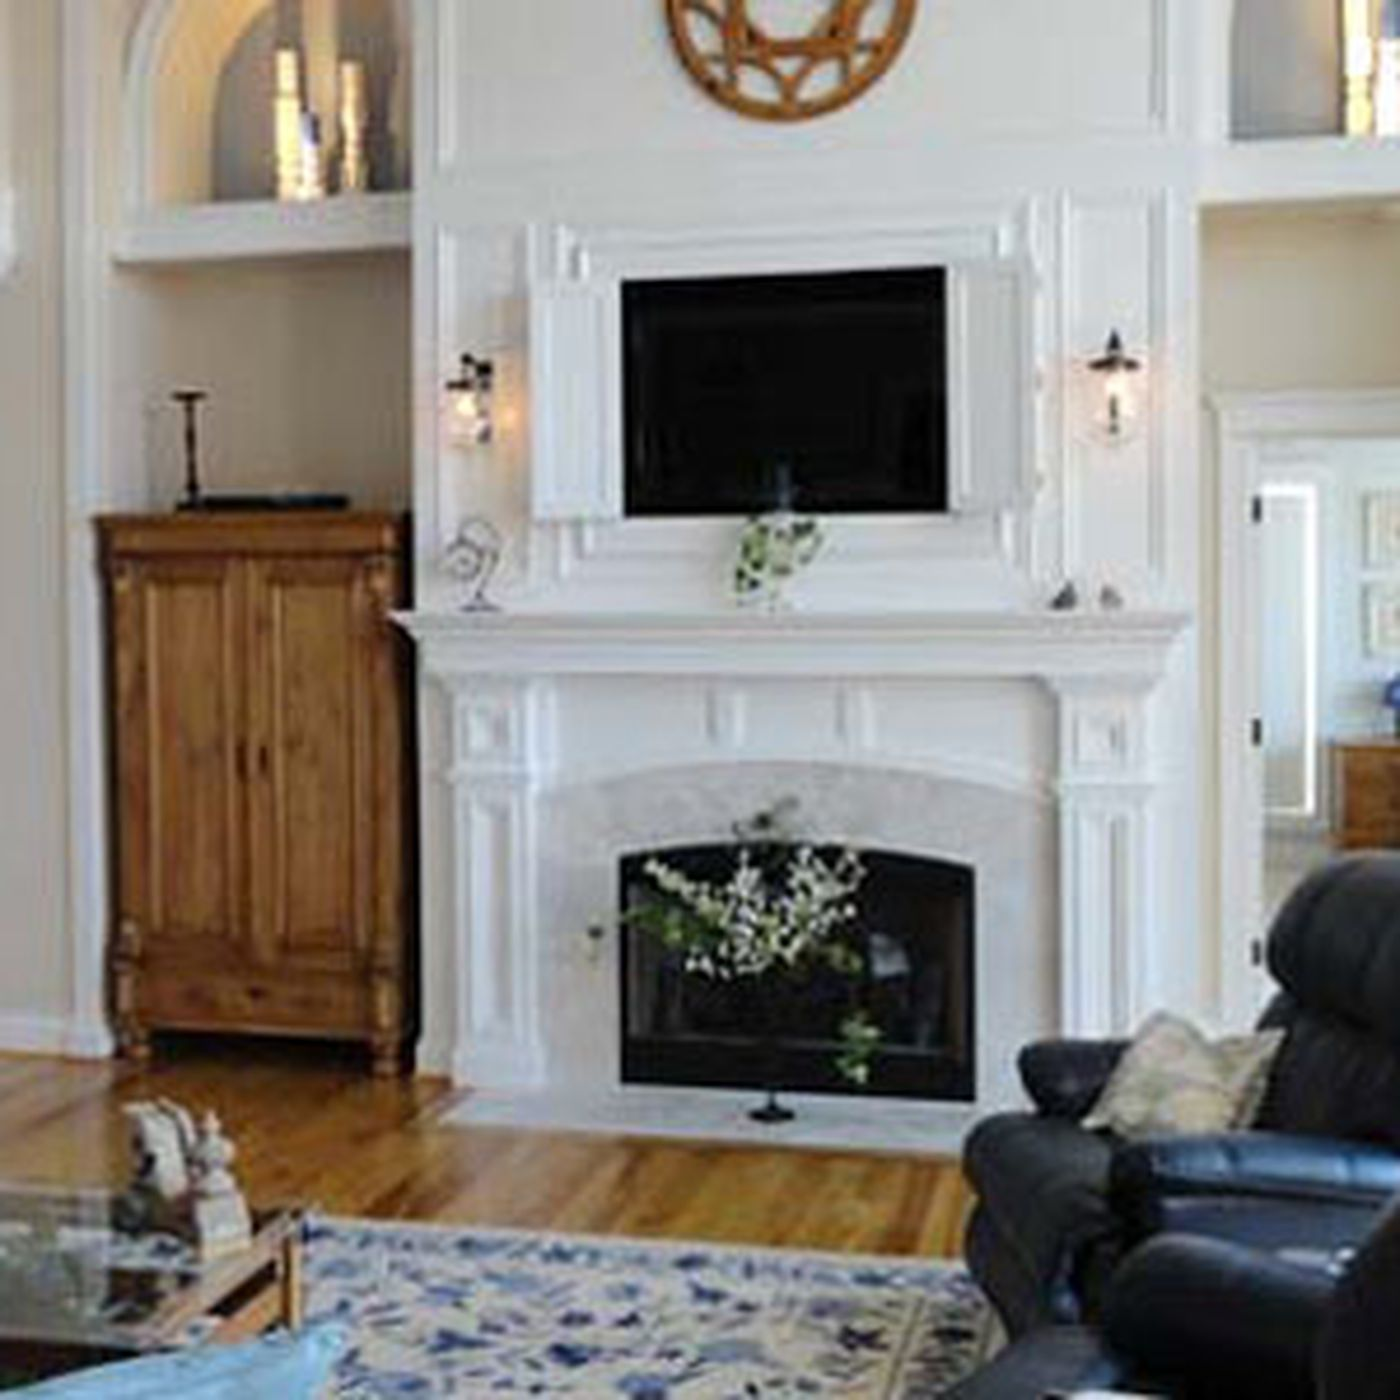 Best Fireplace Before And Afters 2013 This Old House